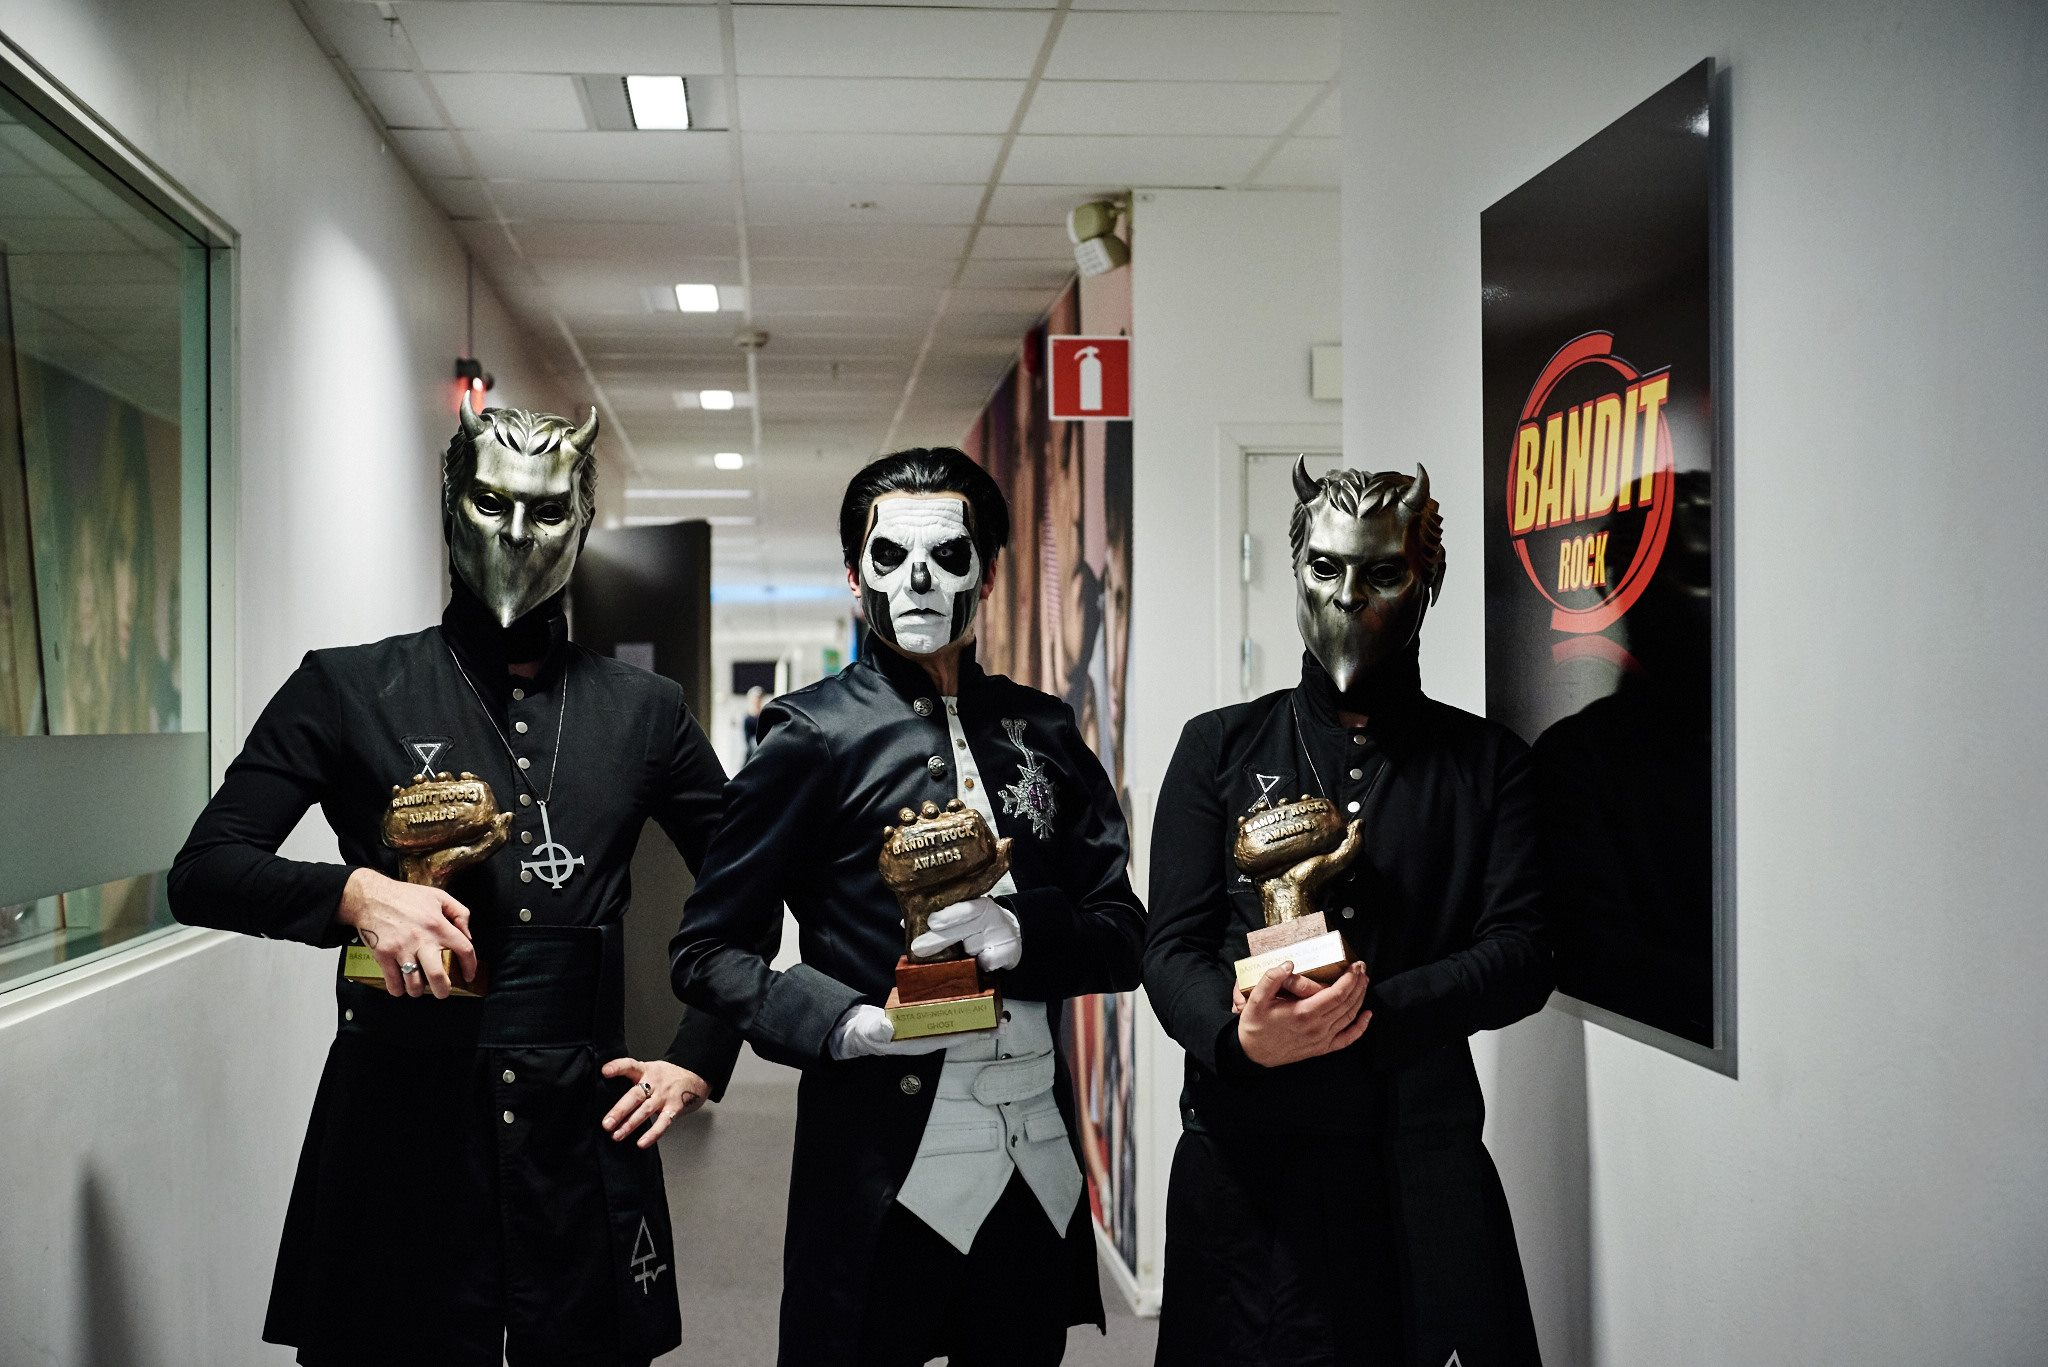 Ghost Wins 3 Bandit Rock Awards